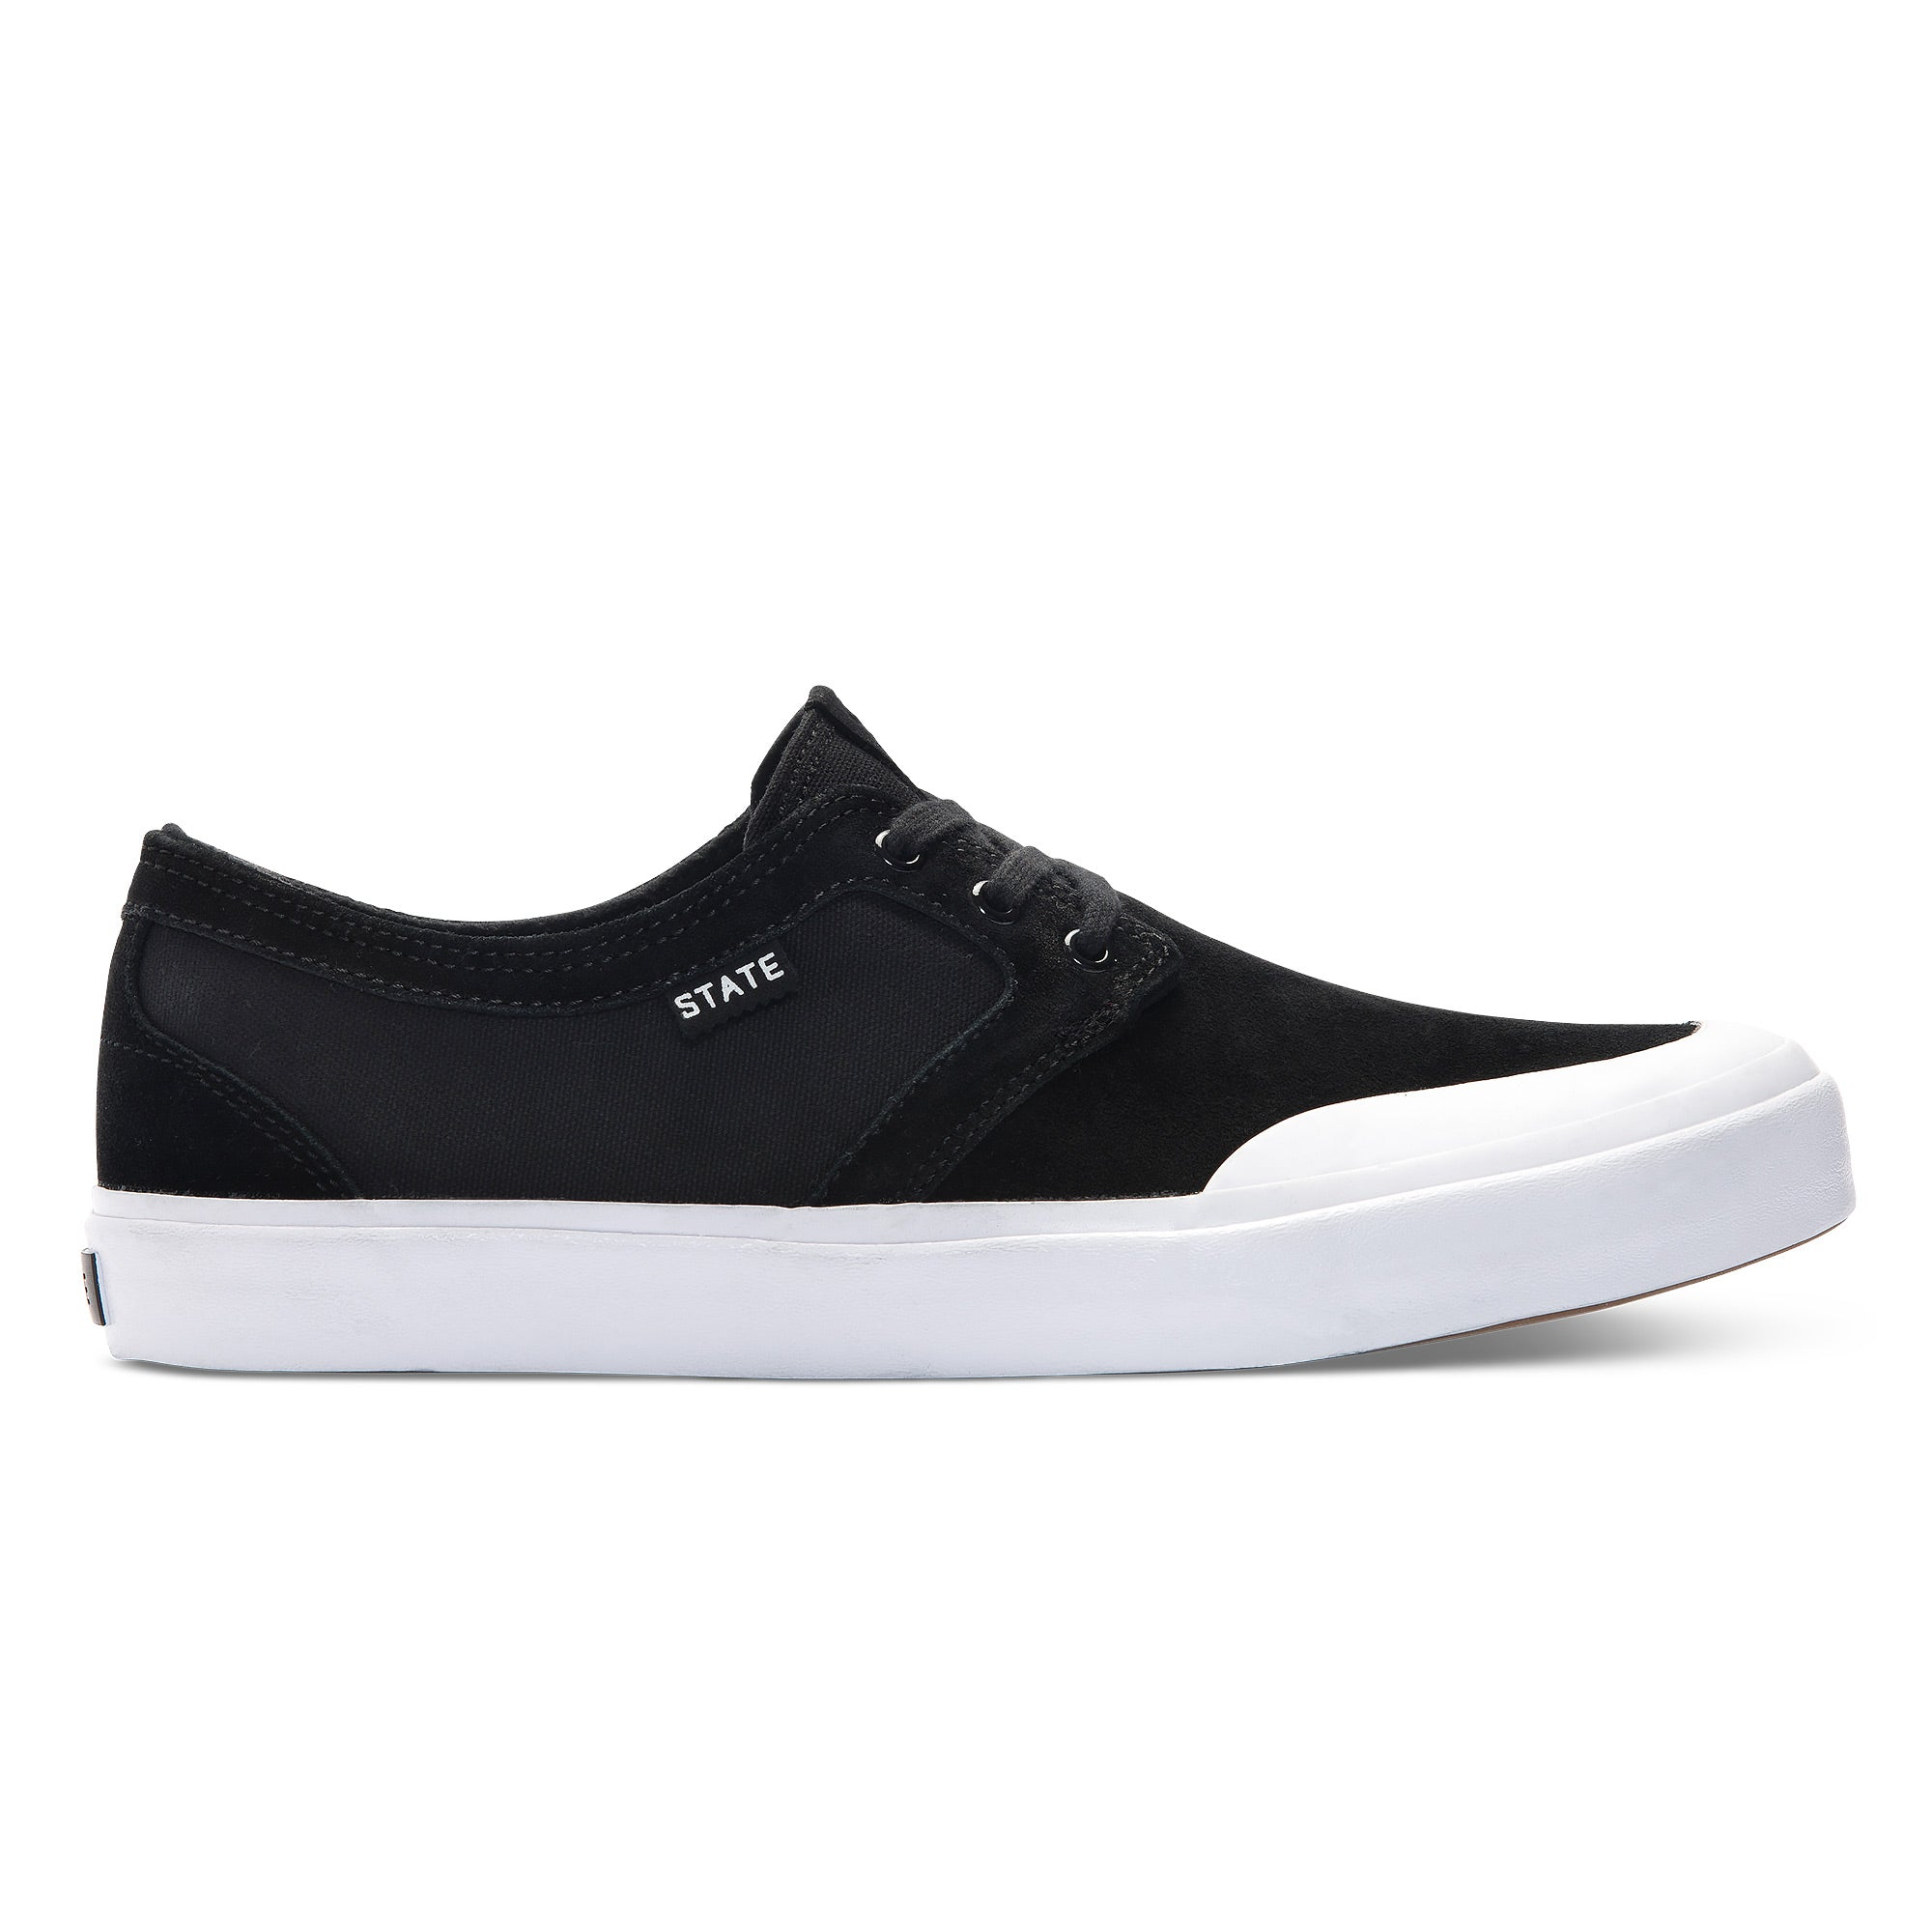 Bishop Black/White Rubber Toe